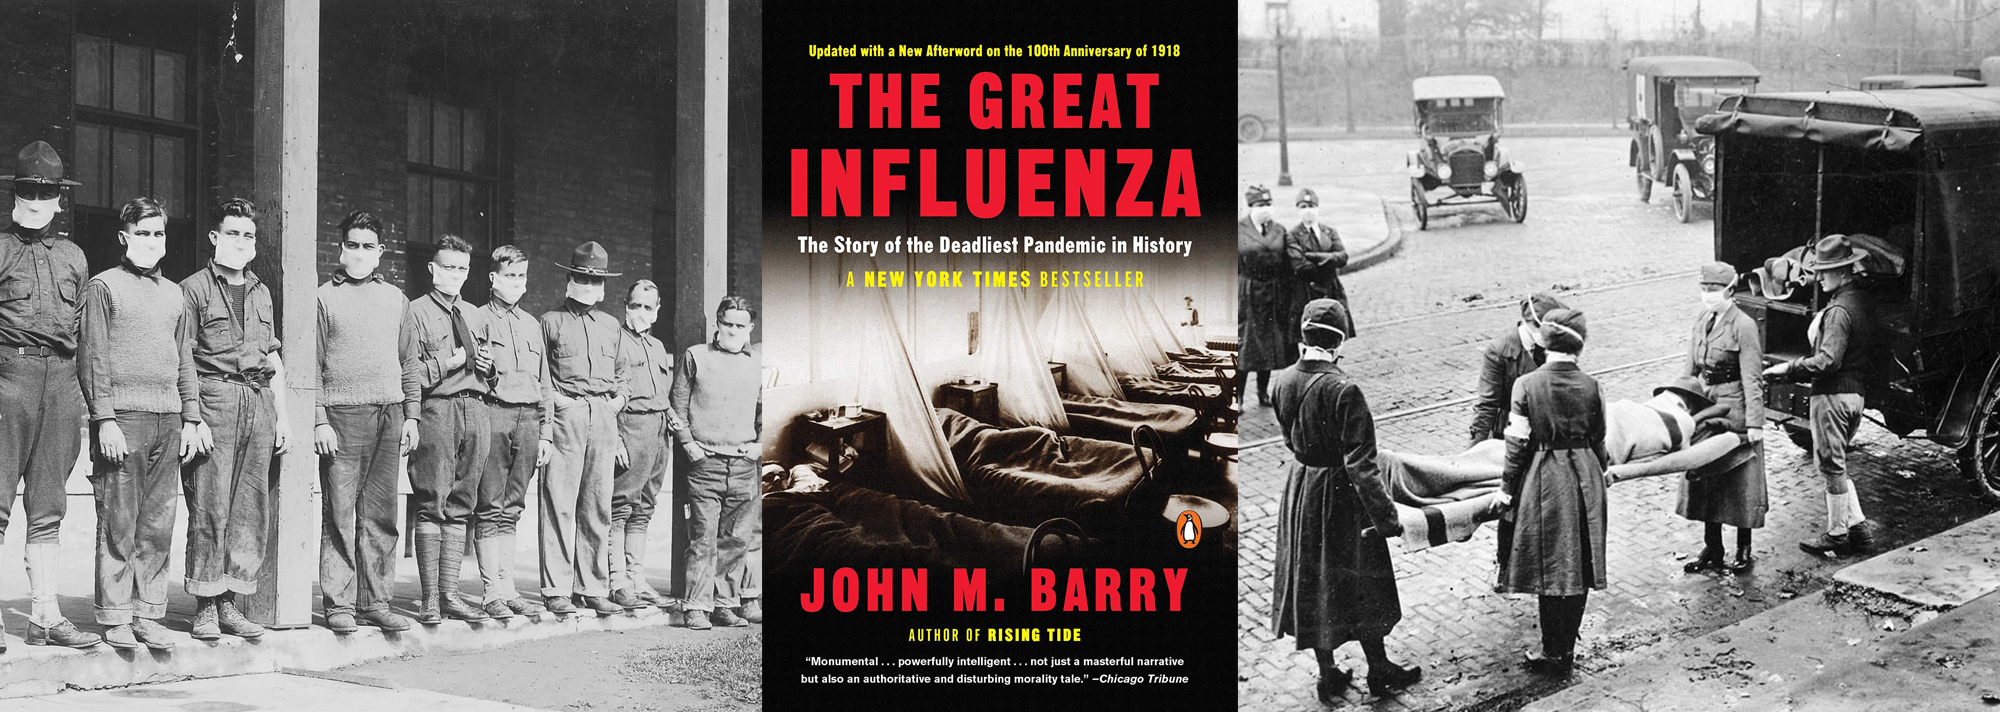 The Great Influenza: John Barry